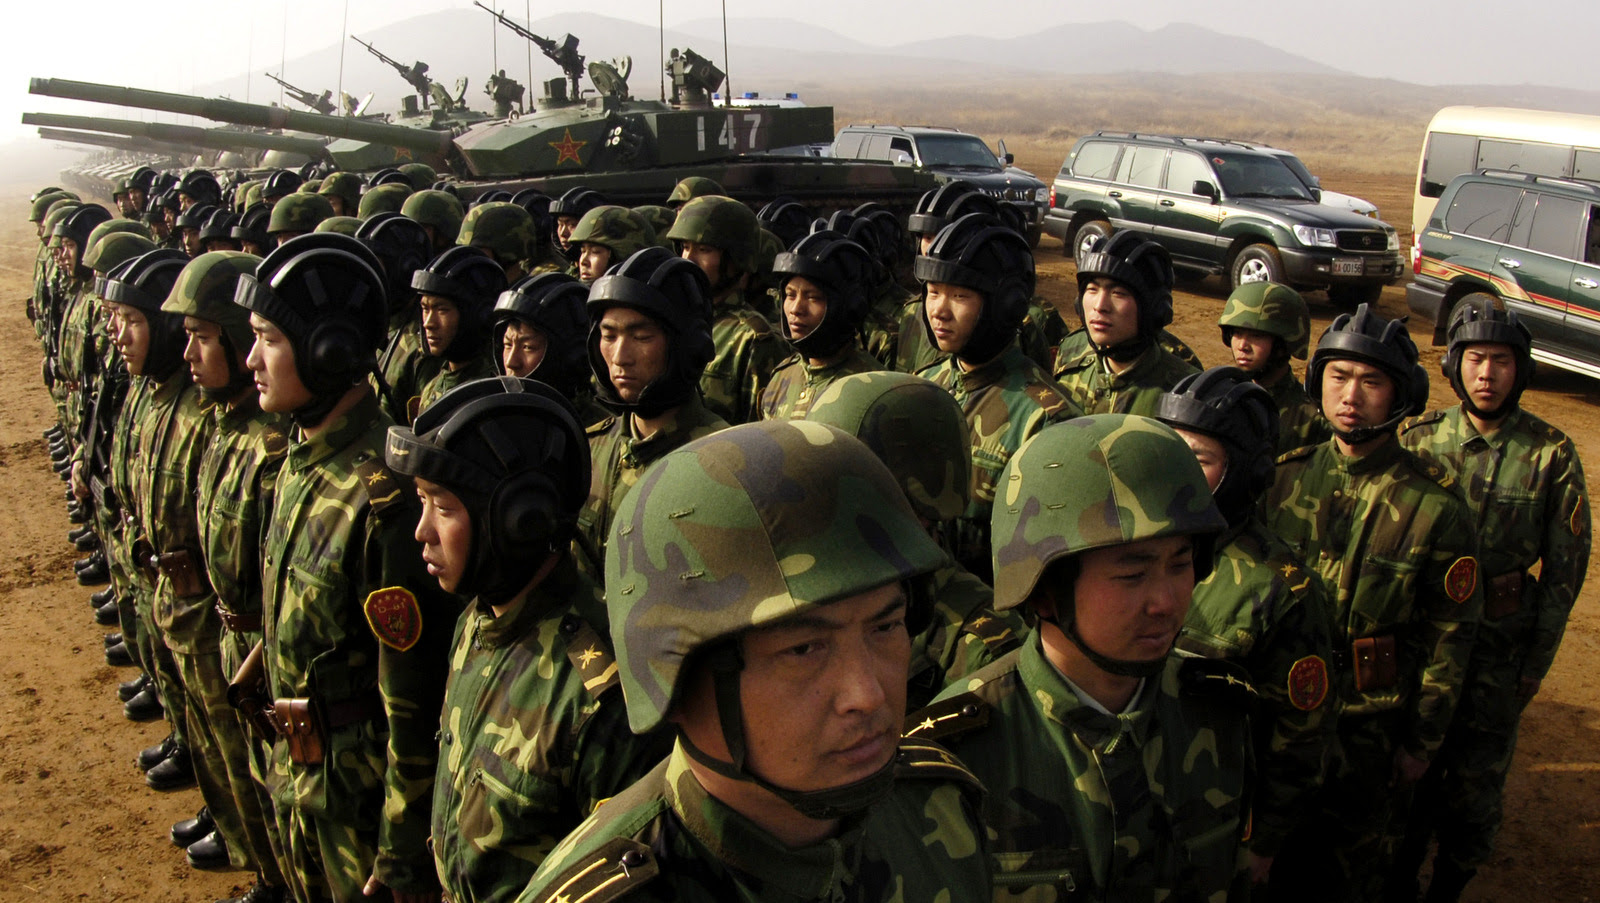 Soldiers with the People's Liberation Army at Shenyang training base in China, March 24, 2007. DoD photo by Staff Sgt. D. Myles Cullen, U.S. Air Force. (Released)